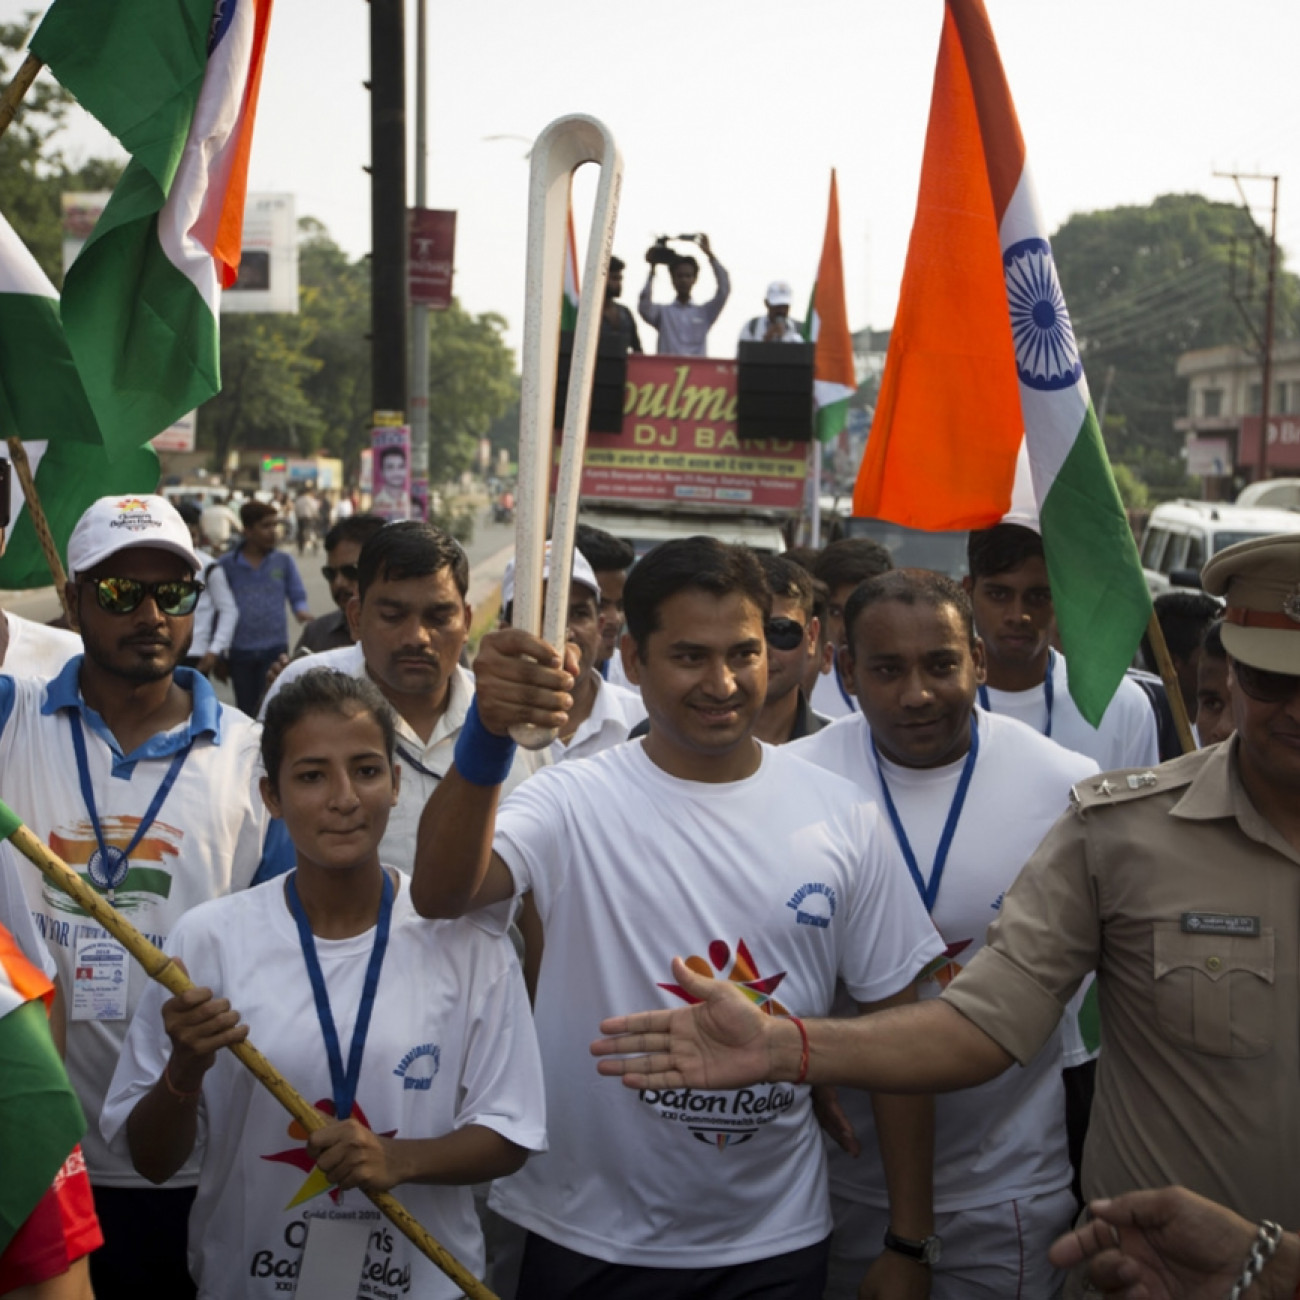 Batonbearers taking part in the Queen's Baton Relay through the streets of Haldwani